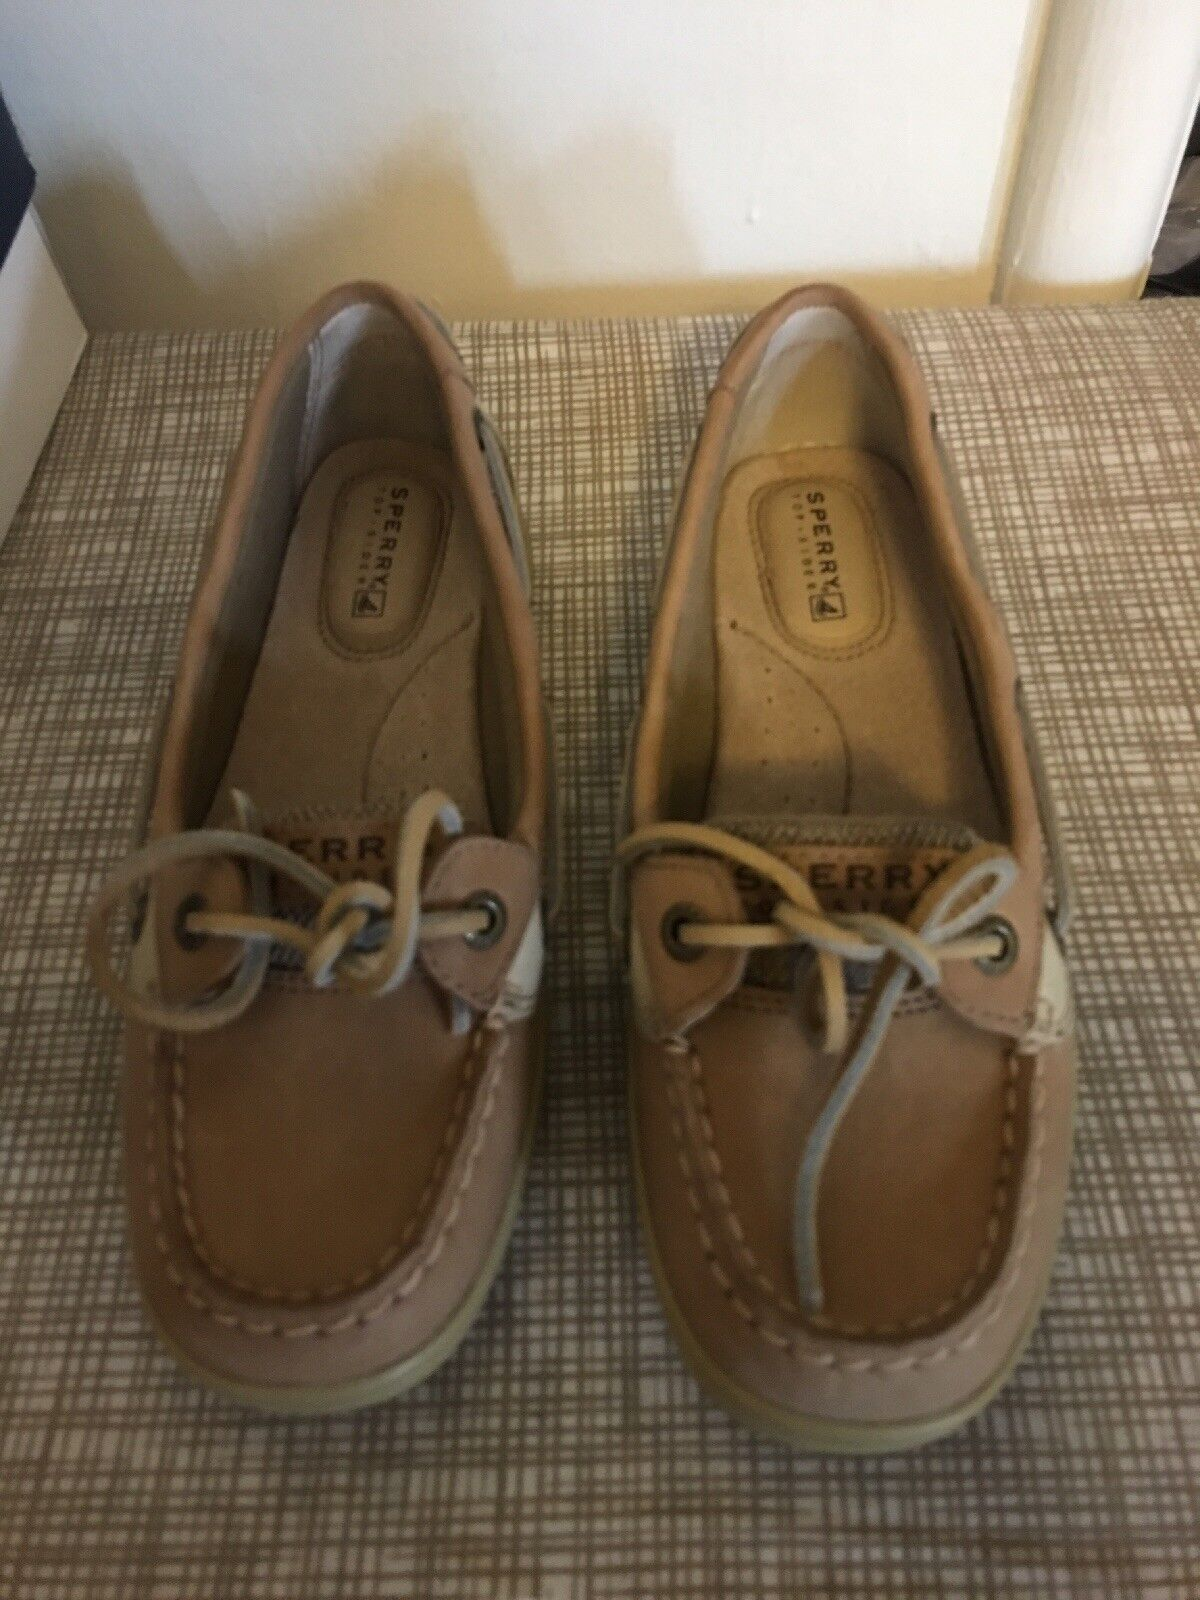 SPERRY TOP-SIDER  Angelfish Leather Boat shoes Linen Oat Women's 5M